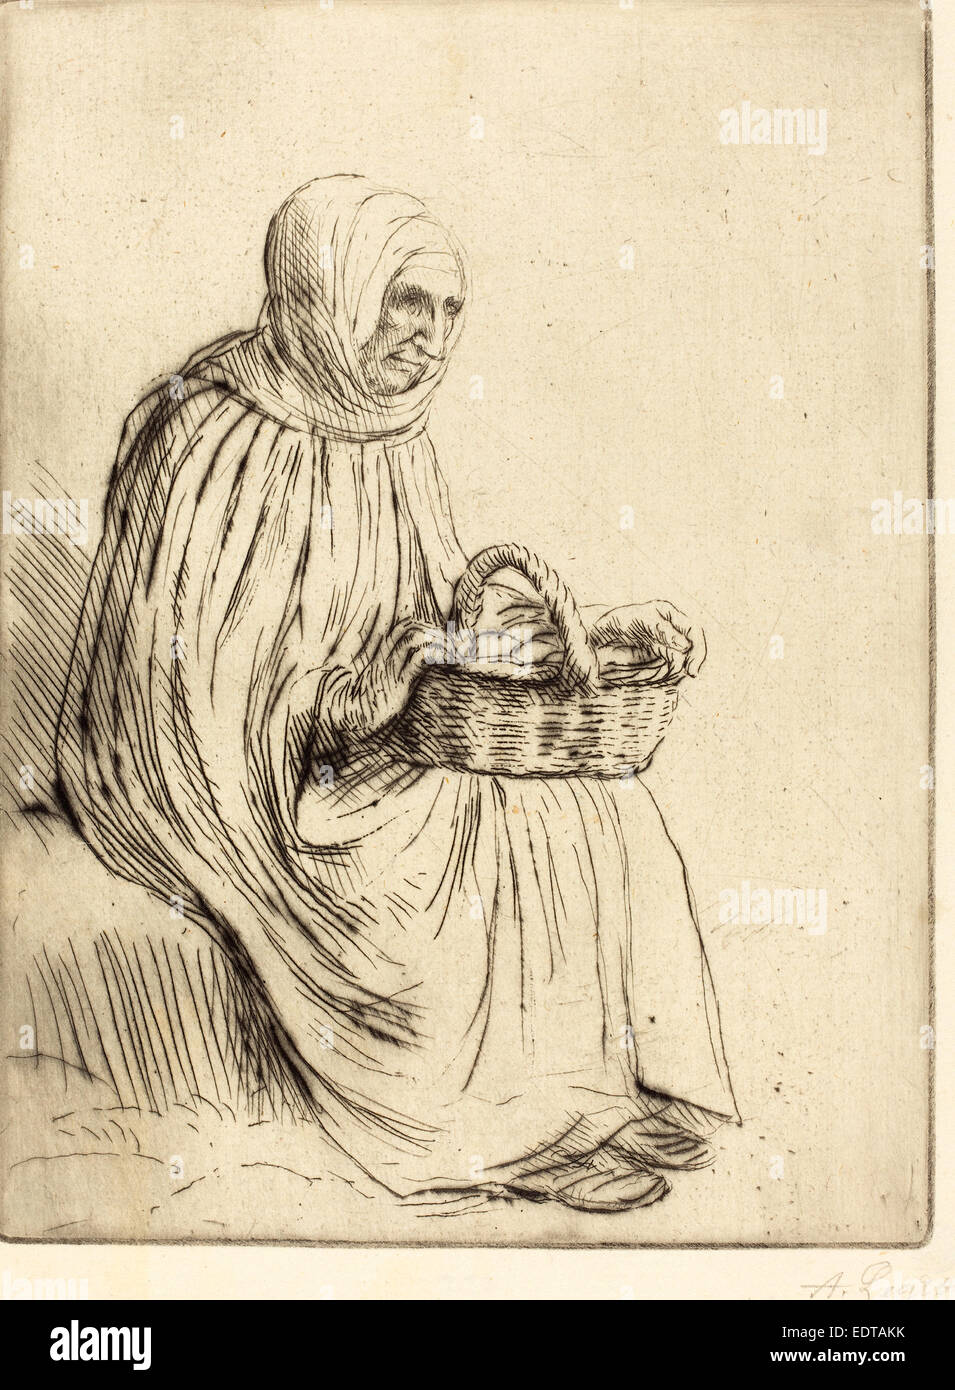 Alphonse Legros, Woman of the Marketplace (Femme du marche), French, 1837 - 1911, etching and drypoint - Stock Image